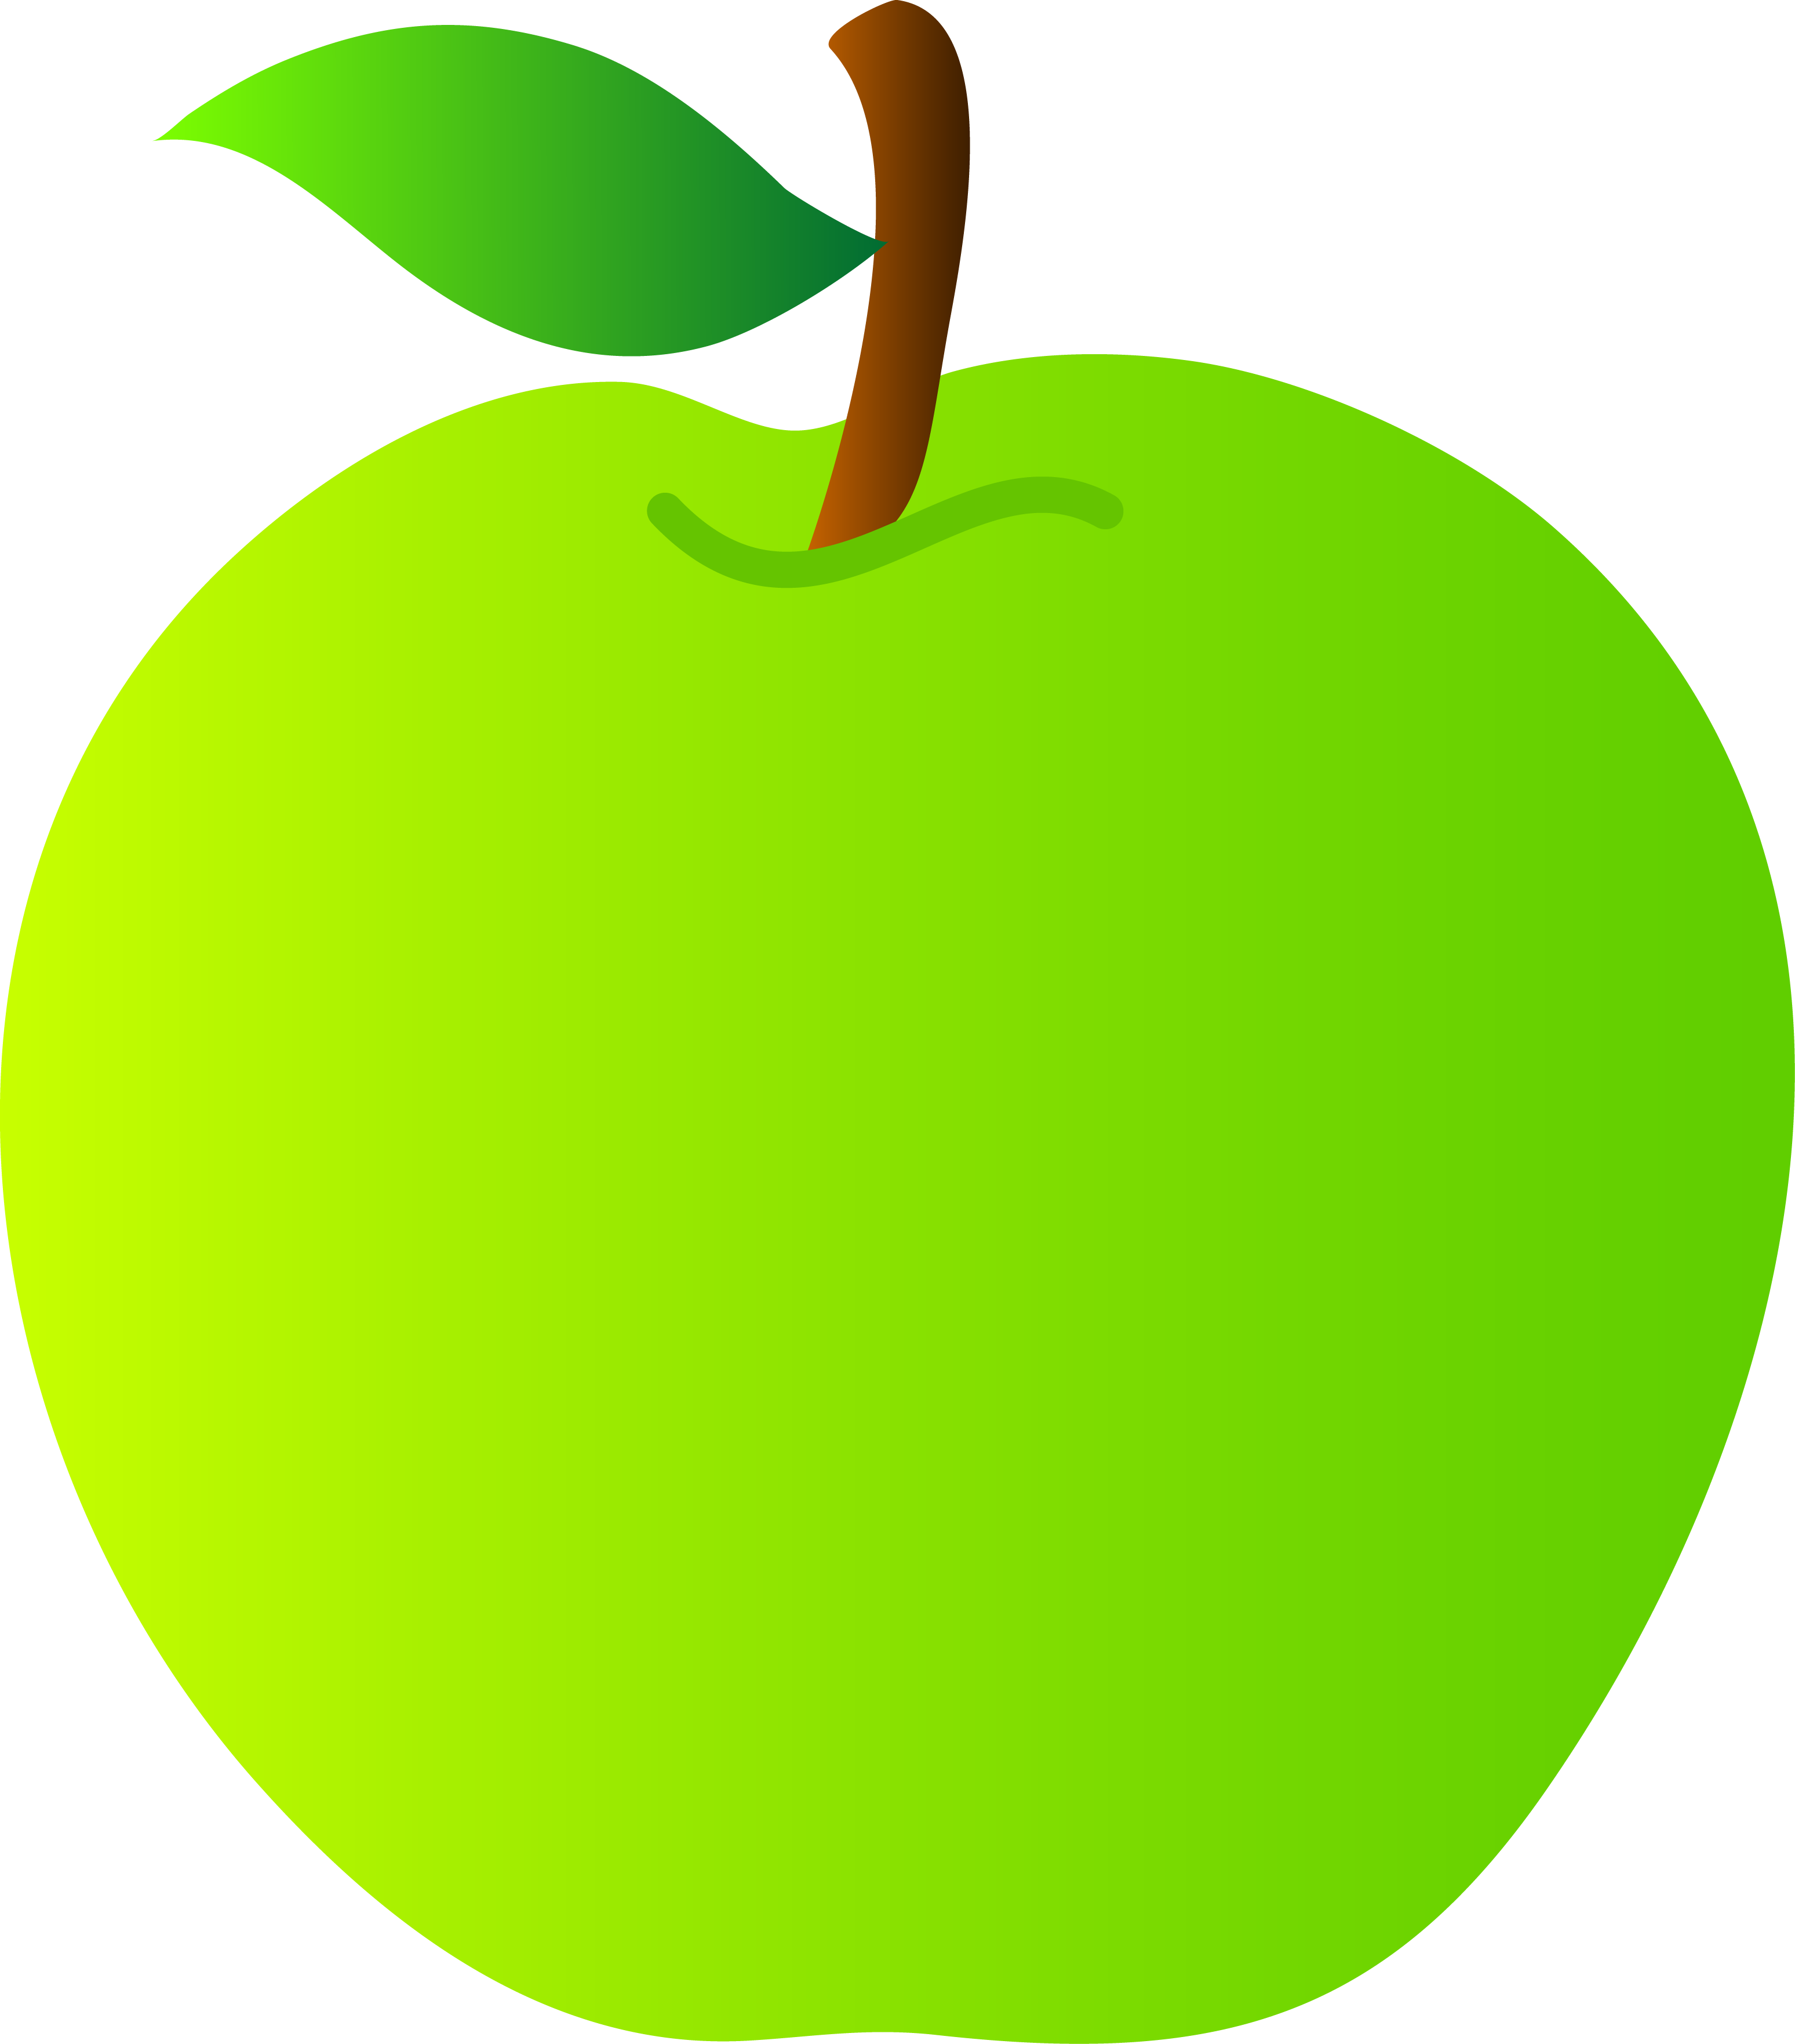 Cute apple border clipart. Green drawing at getdrawings